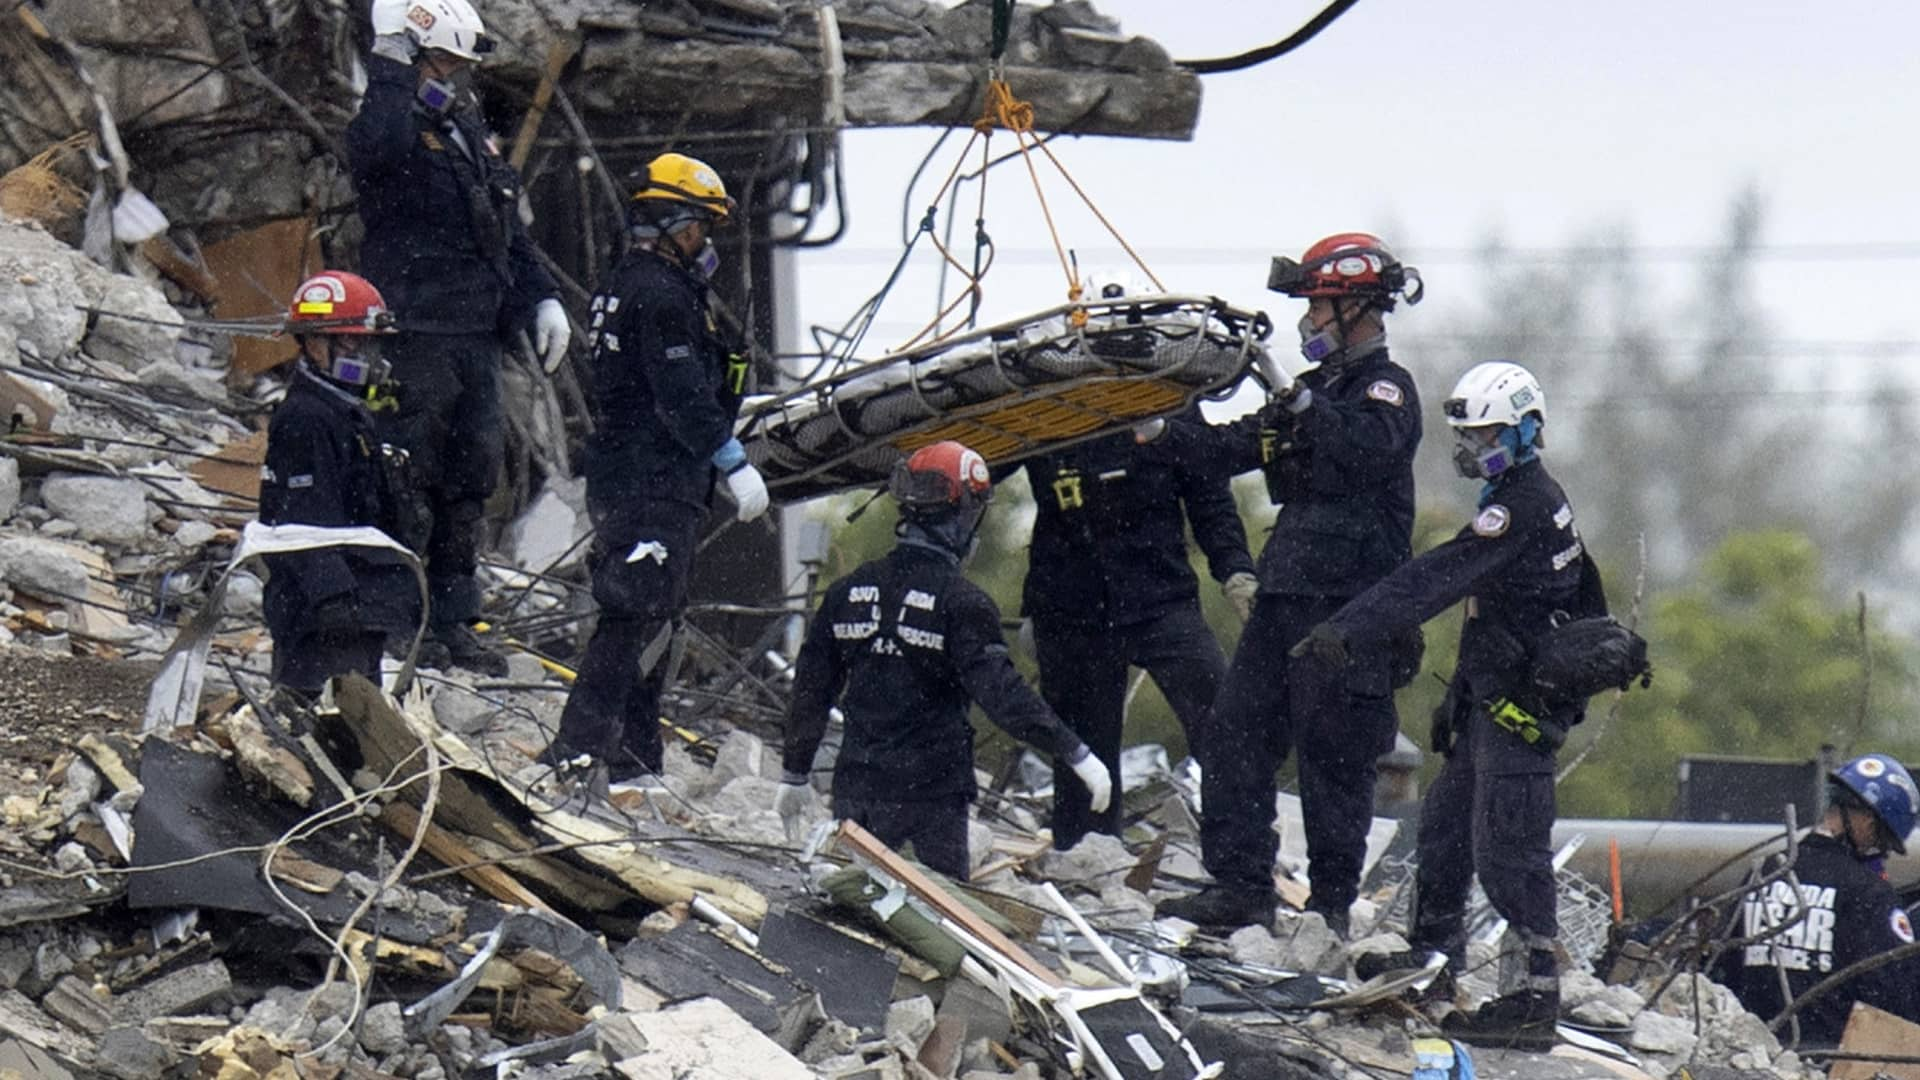 Search and Rescue personnel remove a stretcher from the rubble of the partially collapsed 12-story Champlain Towers South condo building on June 28, 2021 in Surfside, Florida.